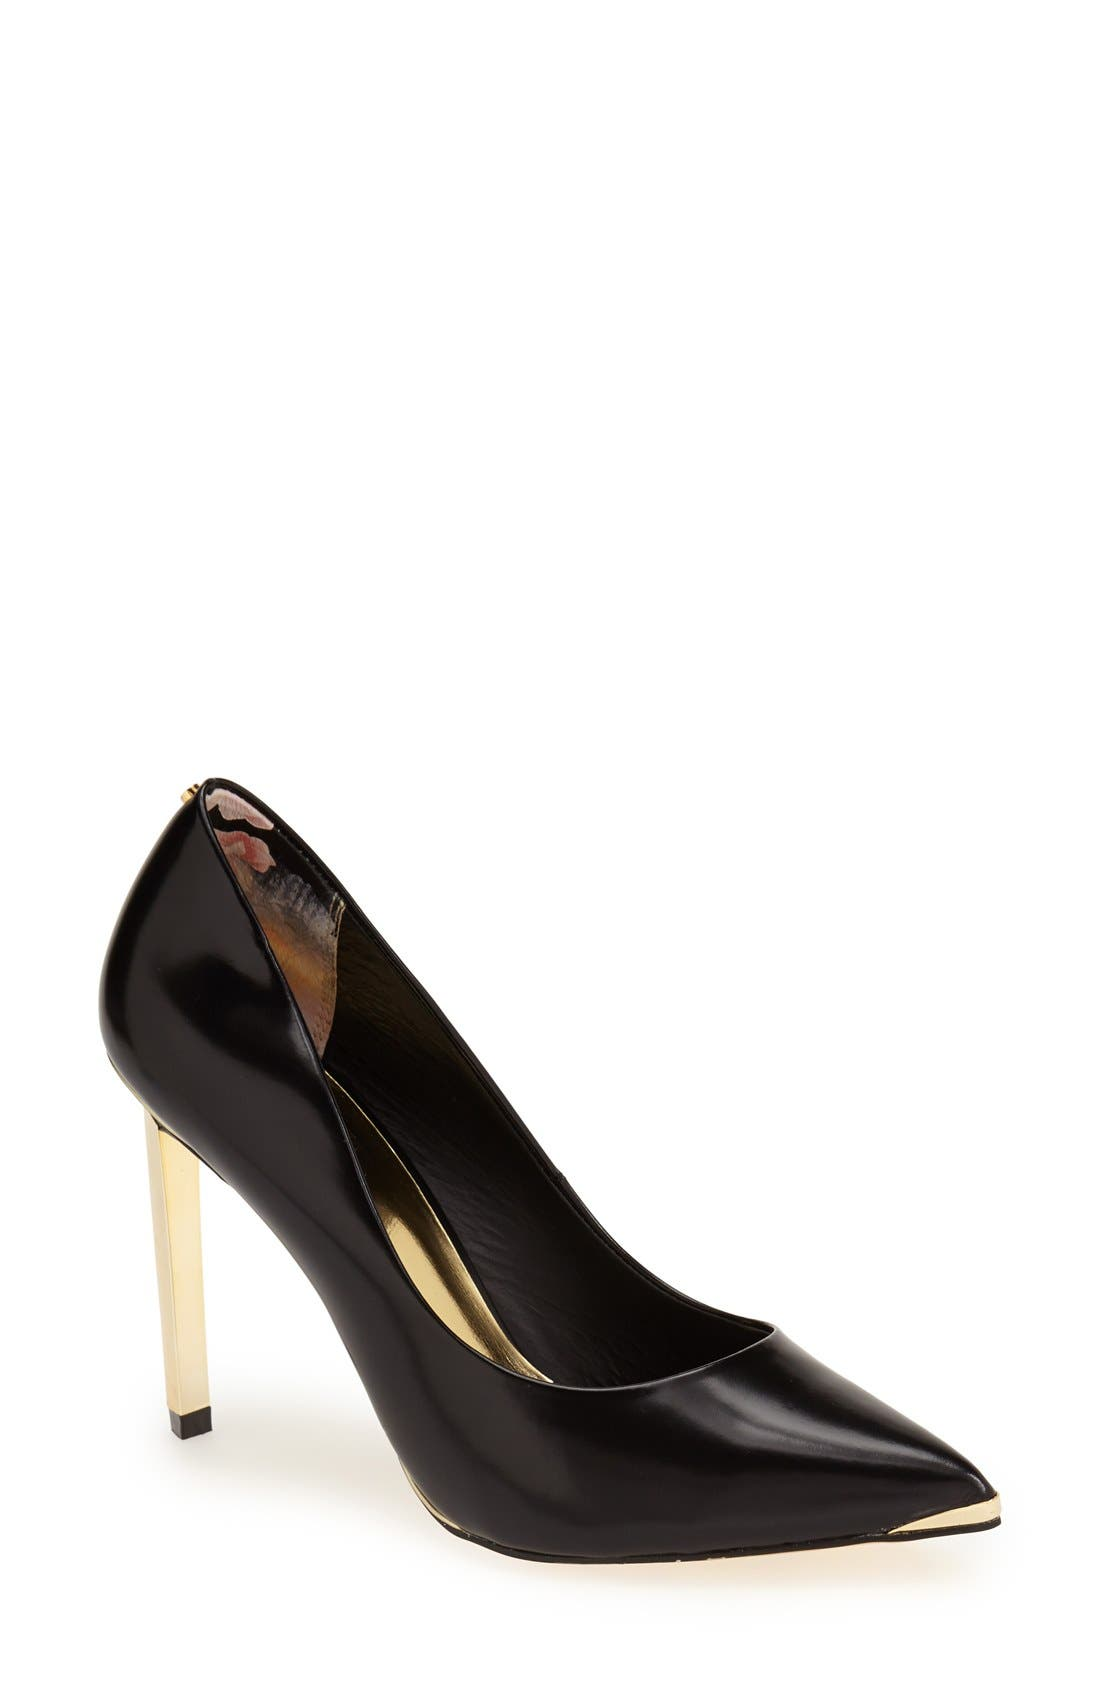 Main Image - Ted Baker London 'Elvena' Pump (Women)